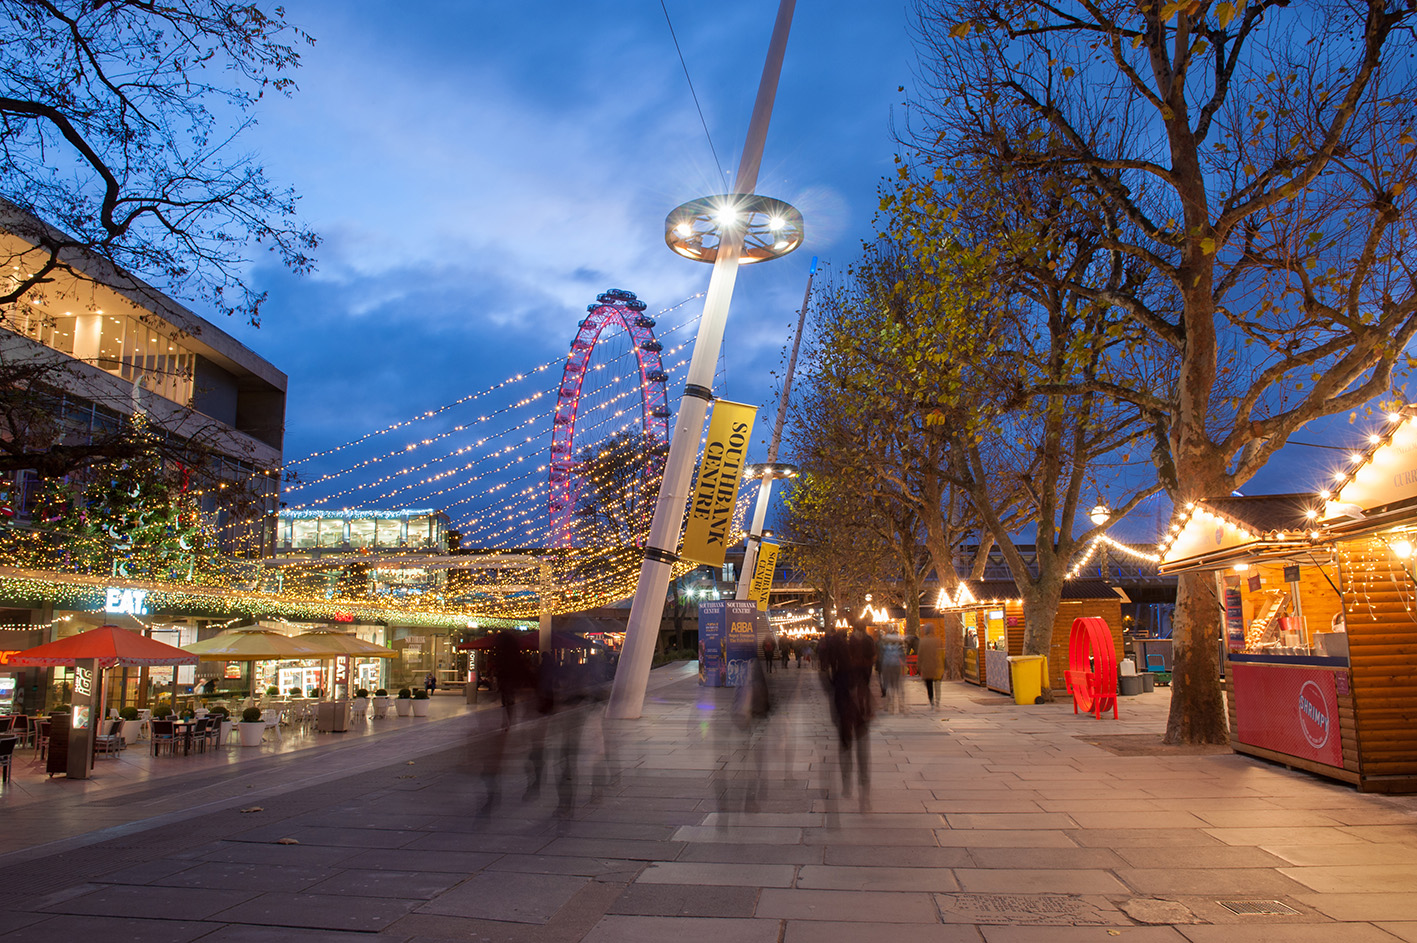 Night Photography of The Southbank, next to the Thames in London